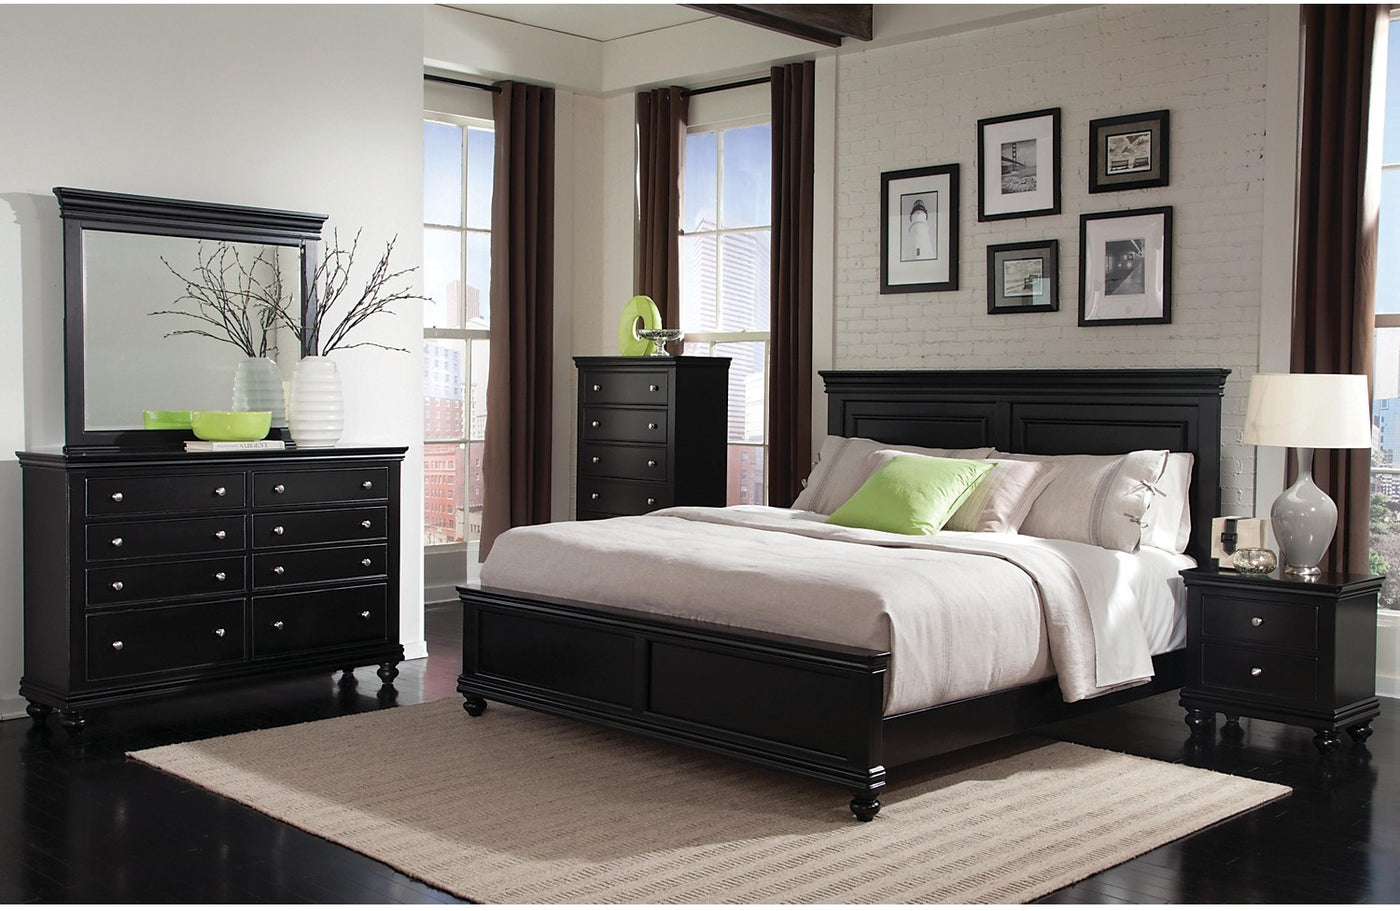 Bedroom Design Ideas: 8 Piece King Bedroom Set